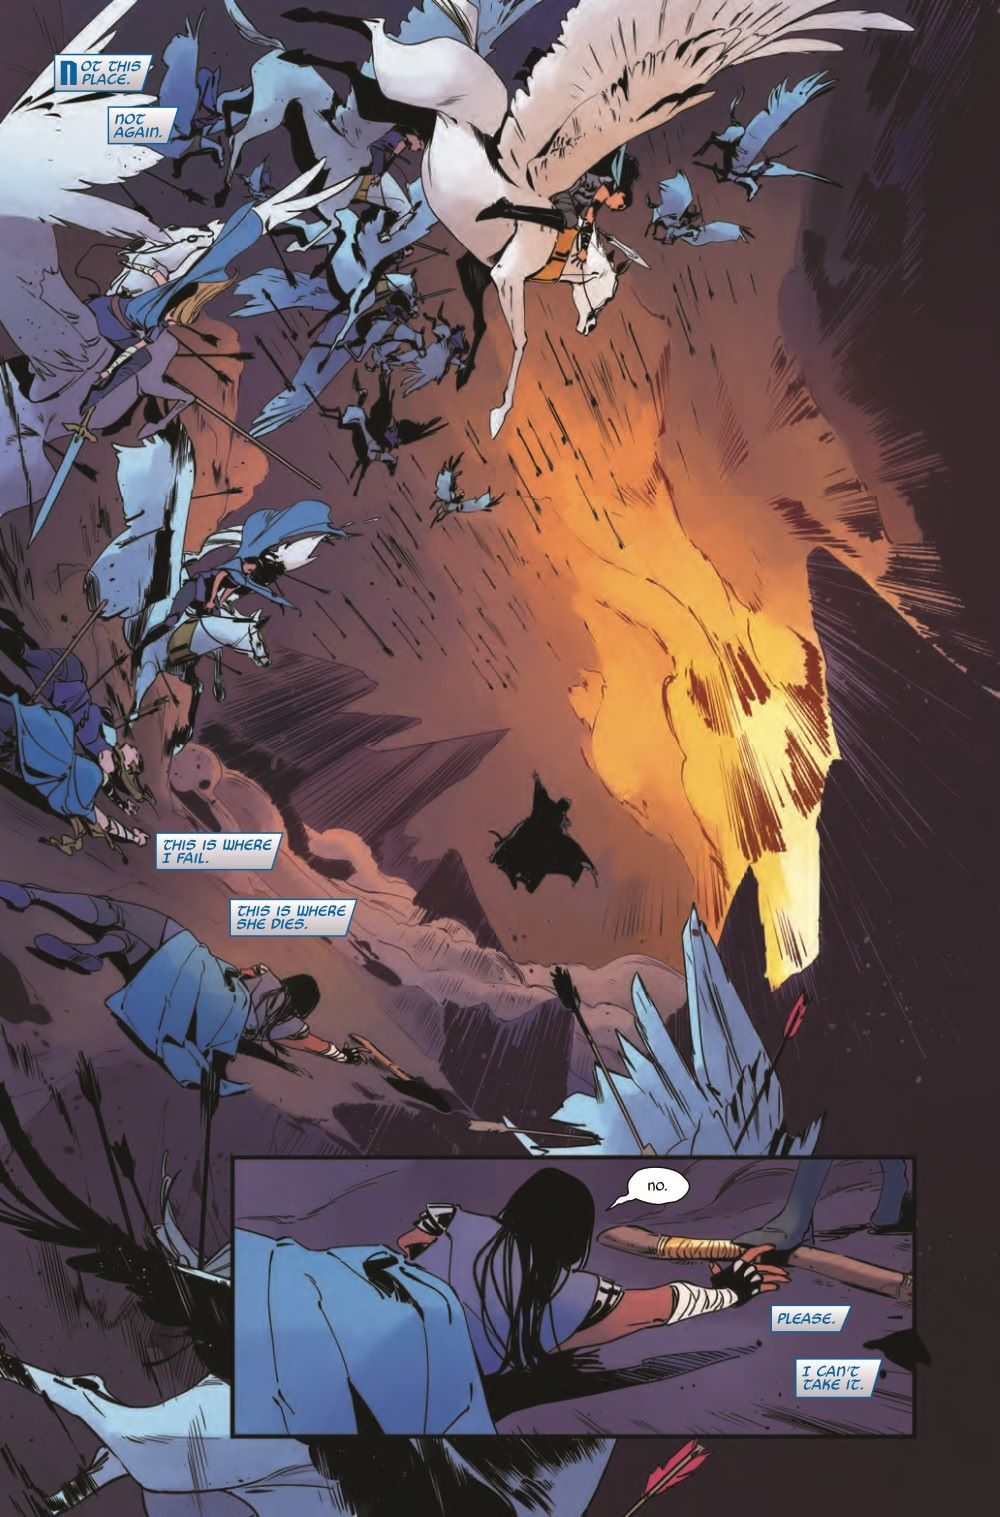 VALKYRIESRET2021001_Preview-3 ComicList Previews: KING IN BLACK RETURN OF THE VALKYRIES #1 (OF 4)